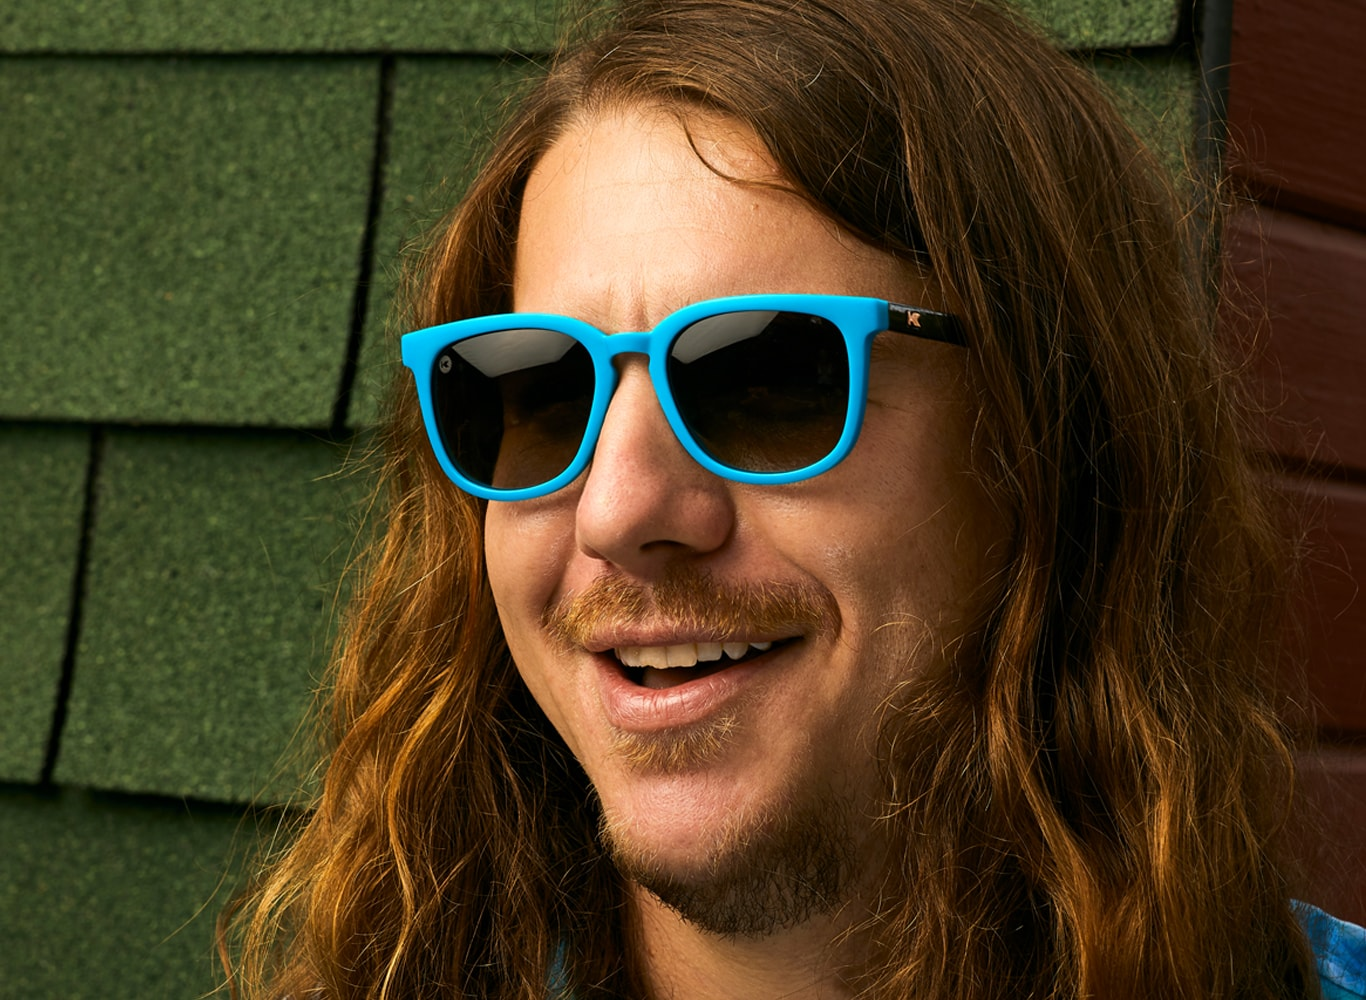 Mike Clevinger Two Down sunglasses